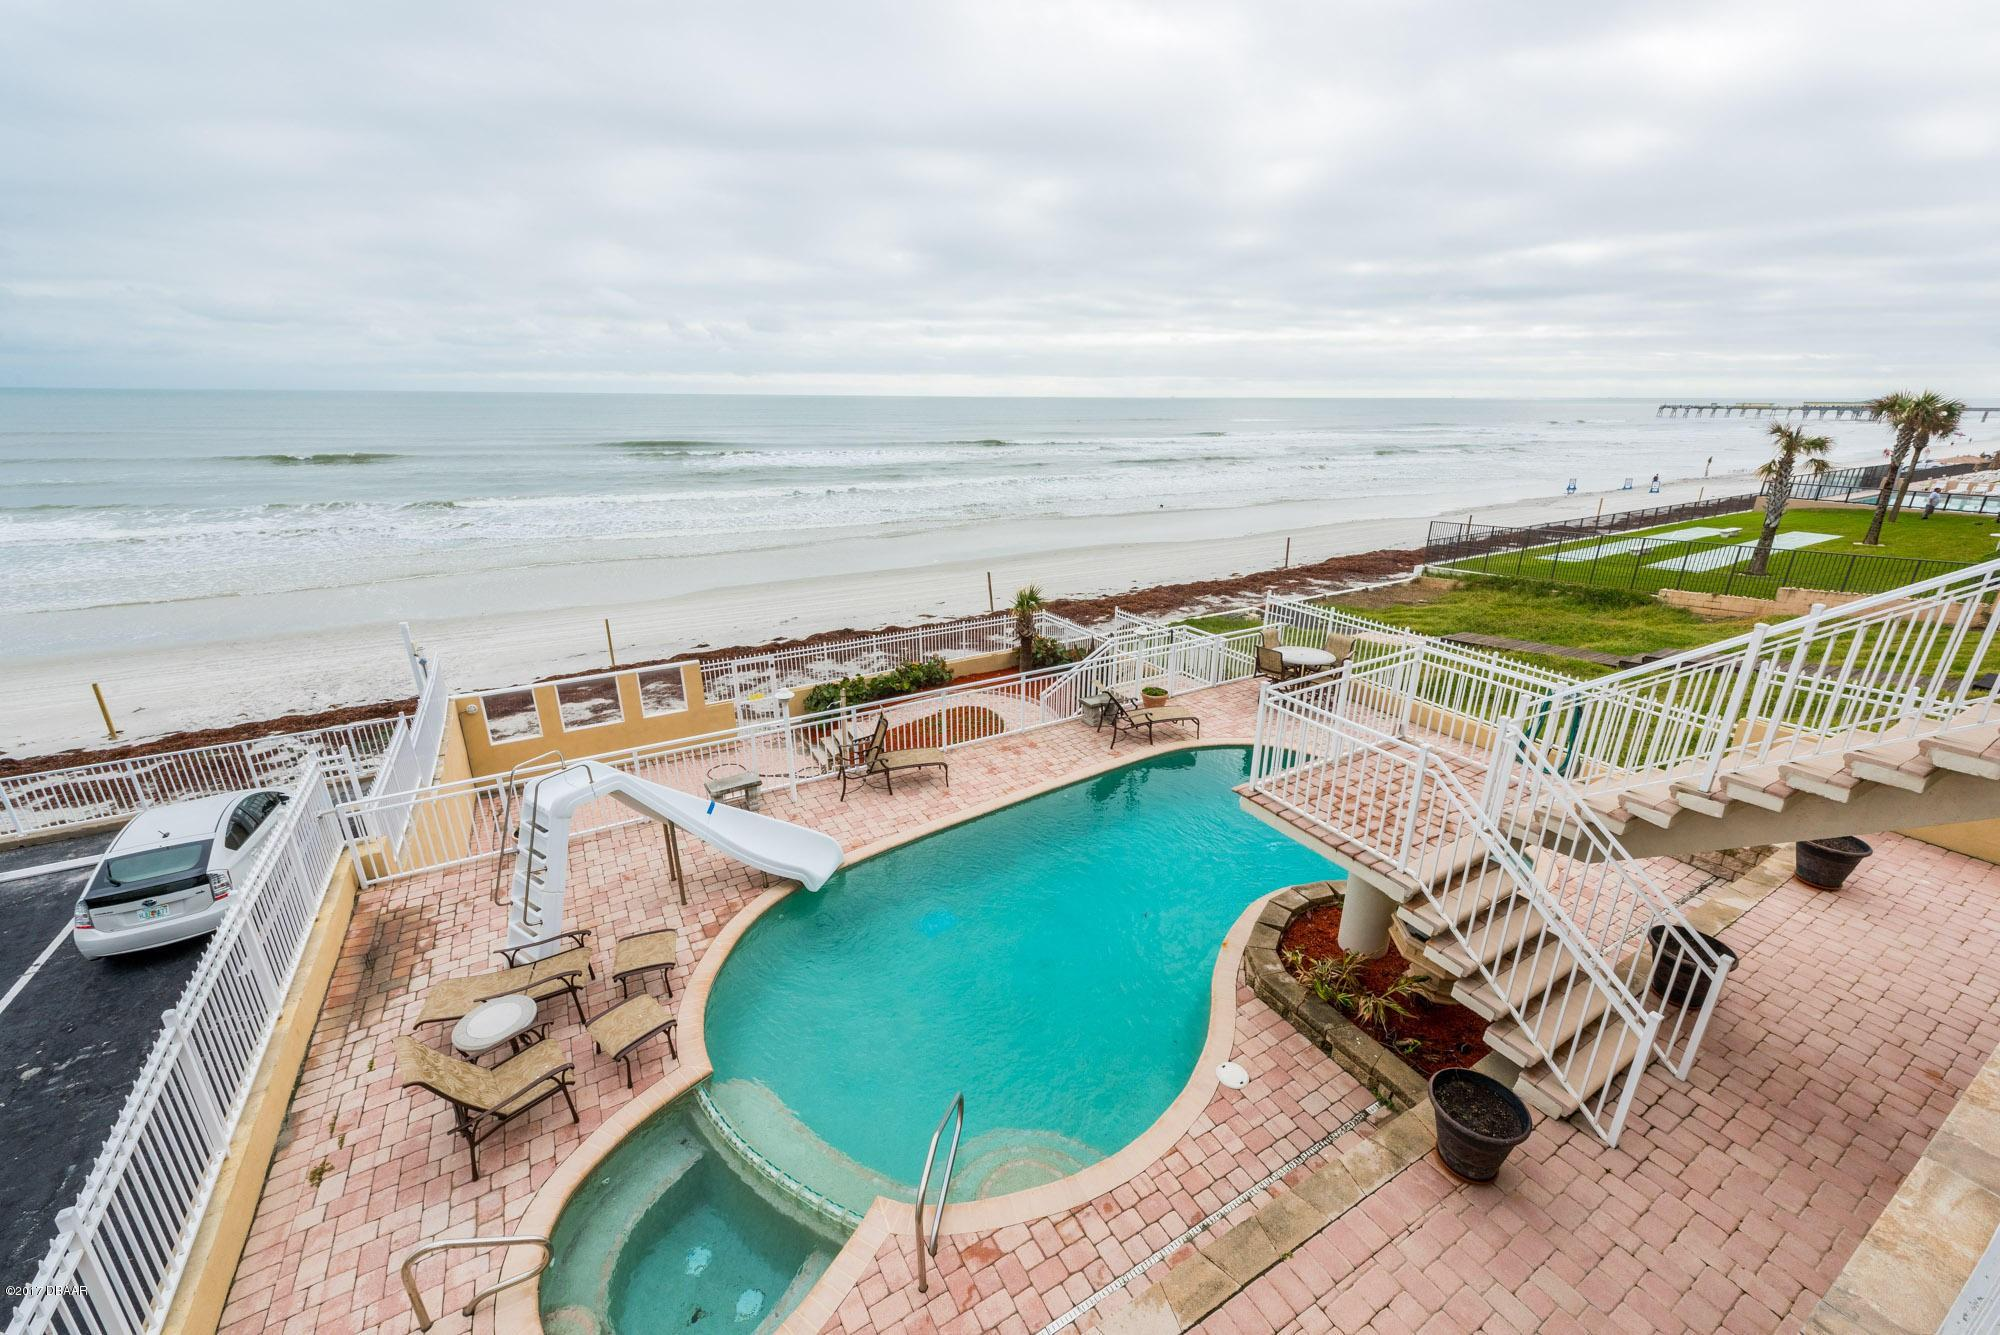 3513 S Atlantic Avenue, Daytona Beach Shores, Florida